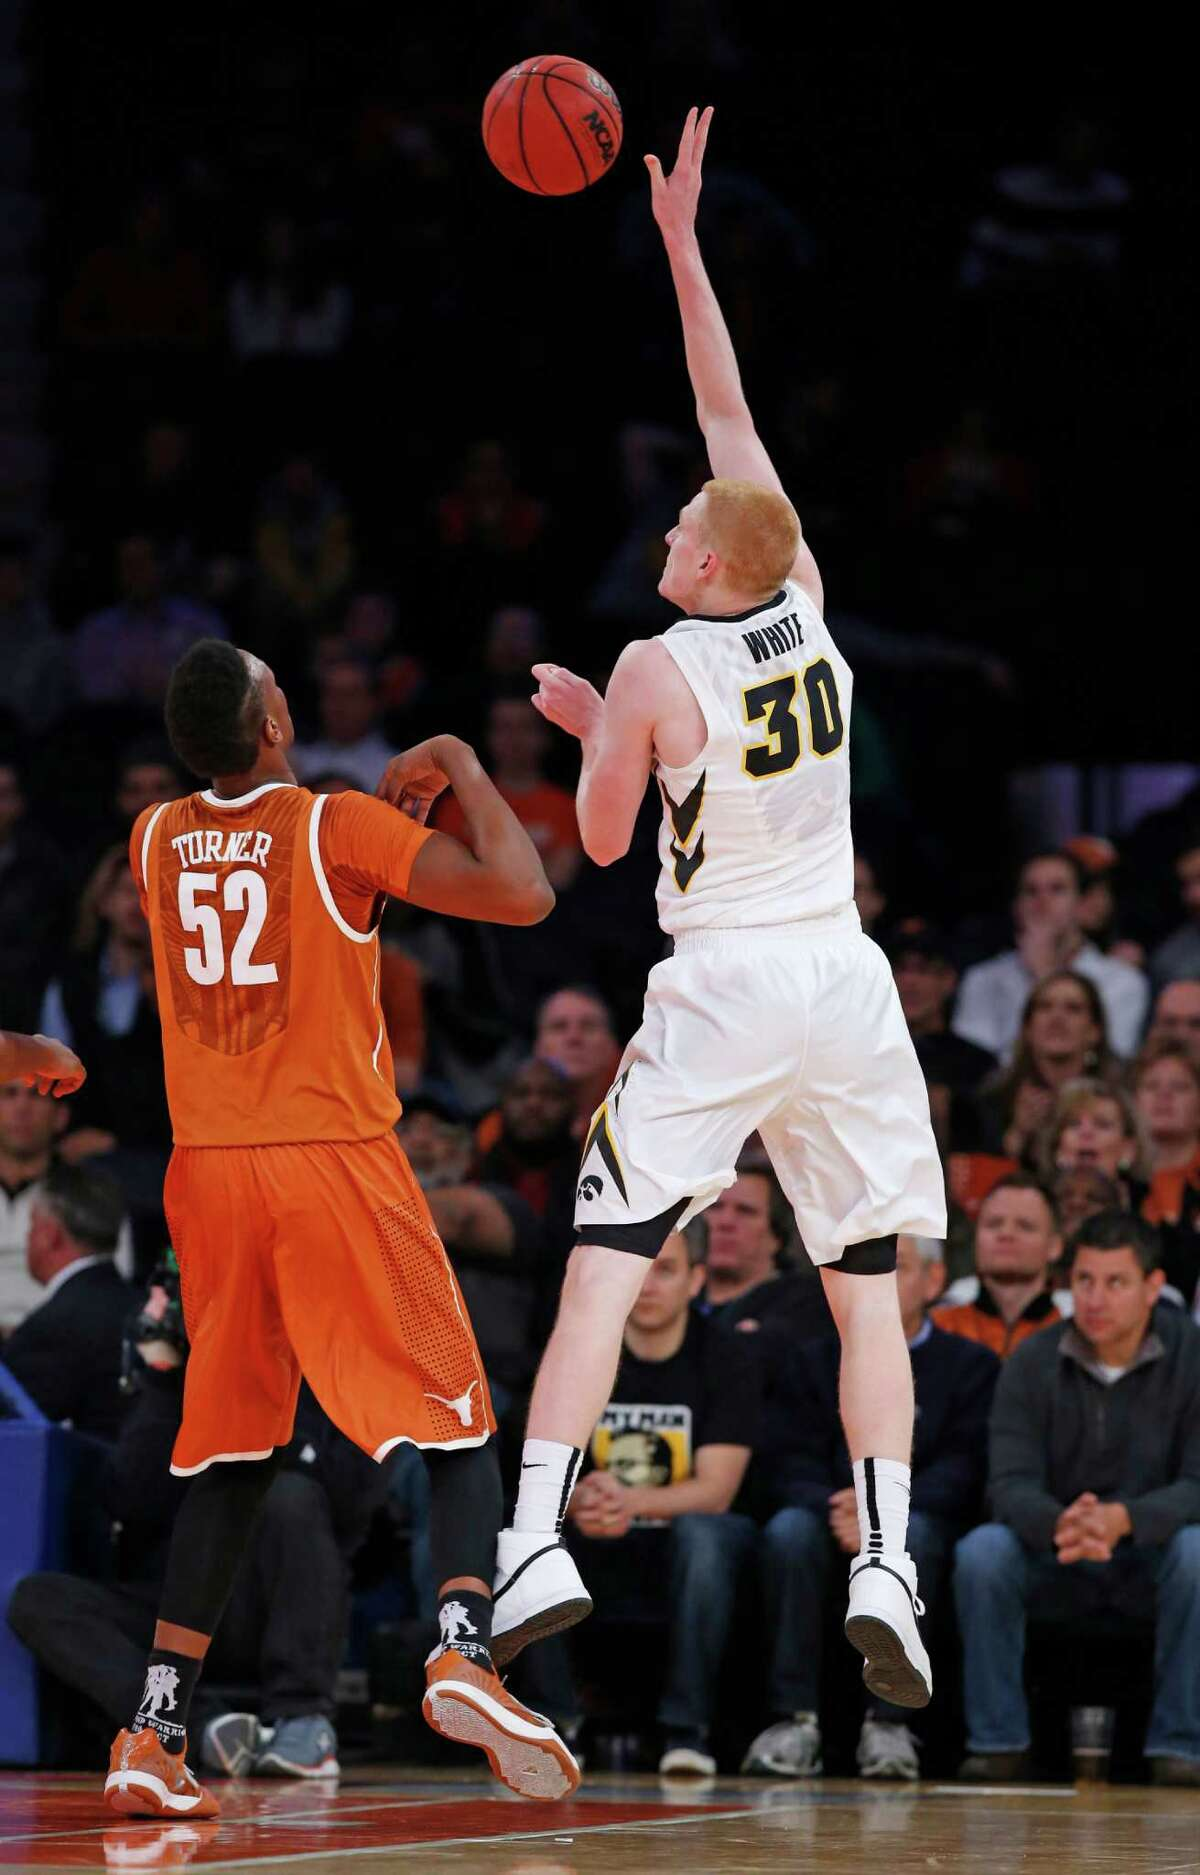 Iowa forward Aaron White (30) shoots over Texas forward Myles Turner (52) in the first half of an NCAA basketball game at Madison Square Garden in New York, Thursday, Nov. 20, 2014. (AP Photo/Kathy Willens)